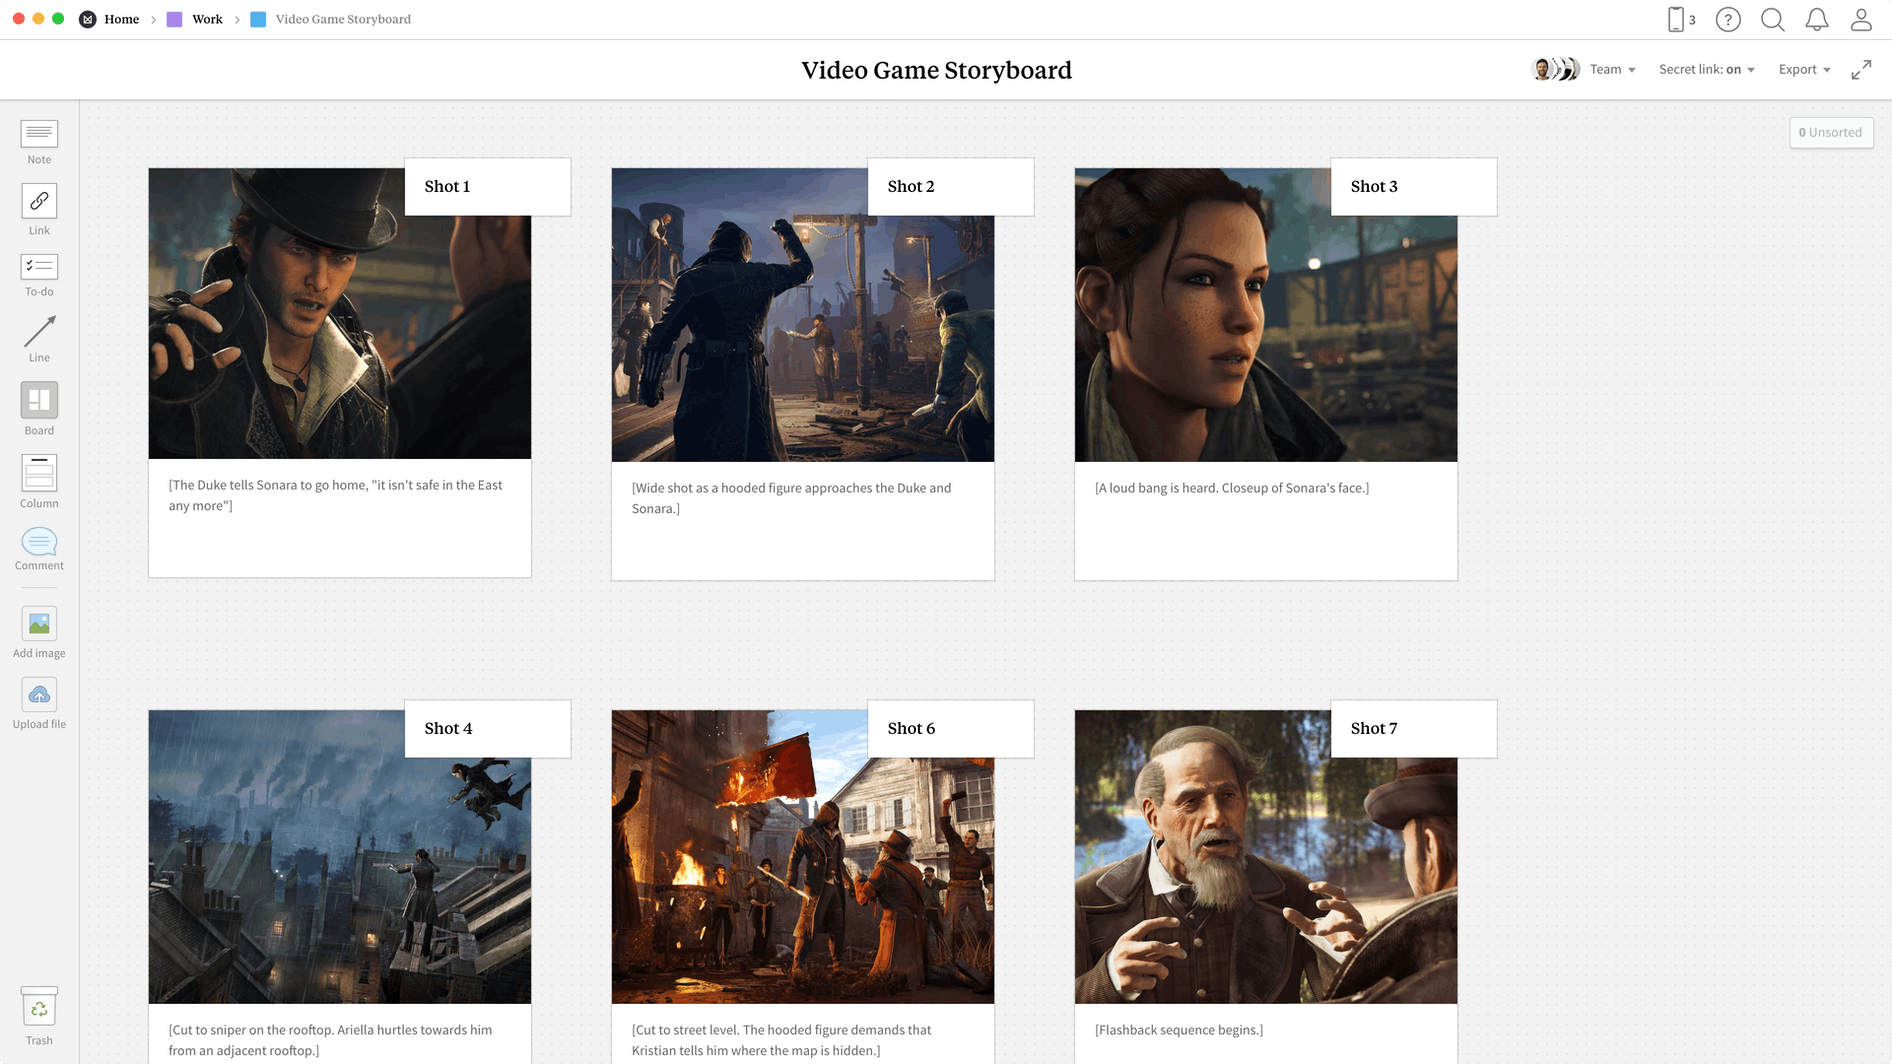 Game Design Storyboard Template, within the Milanote app